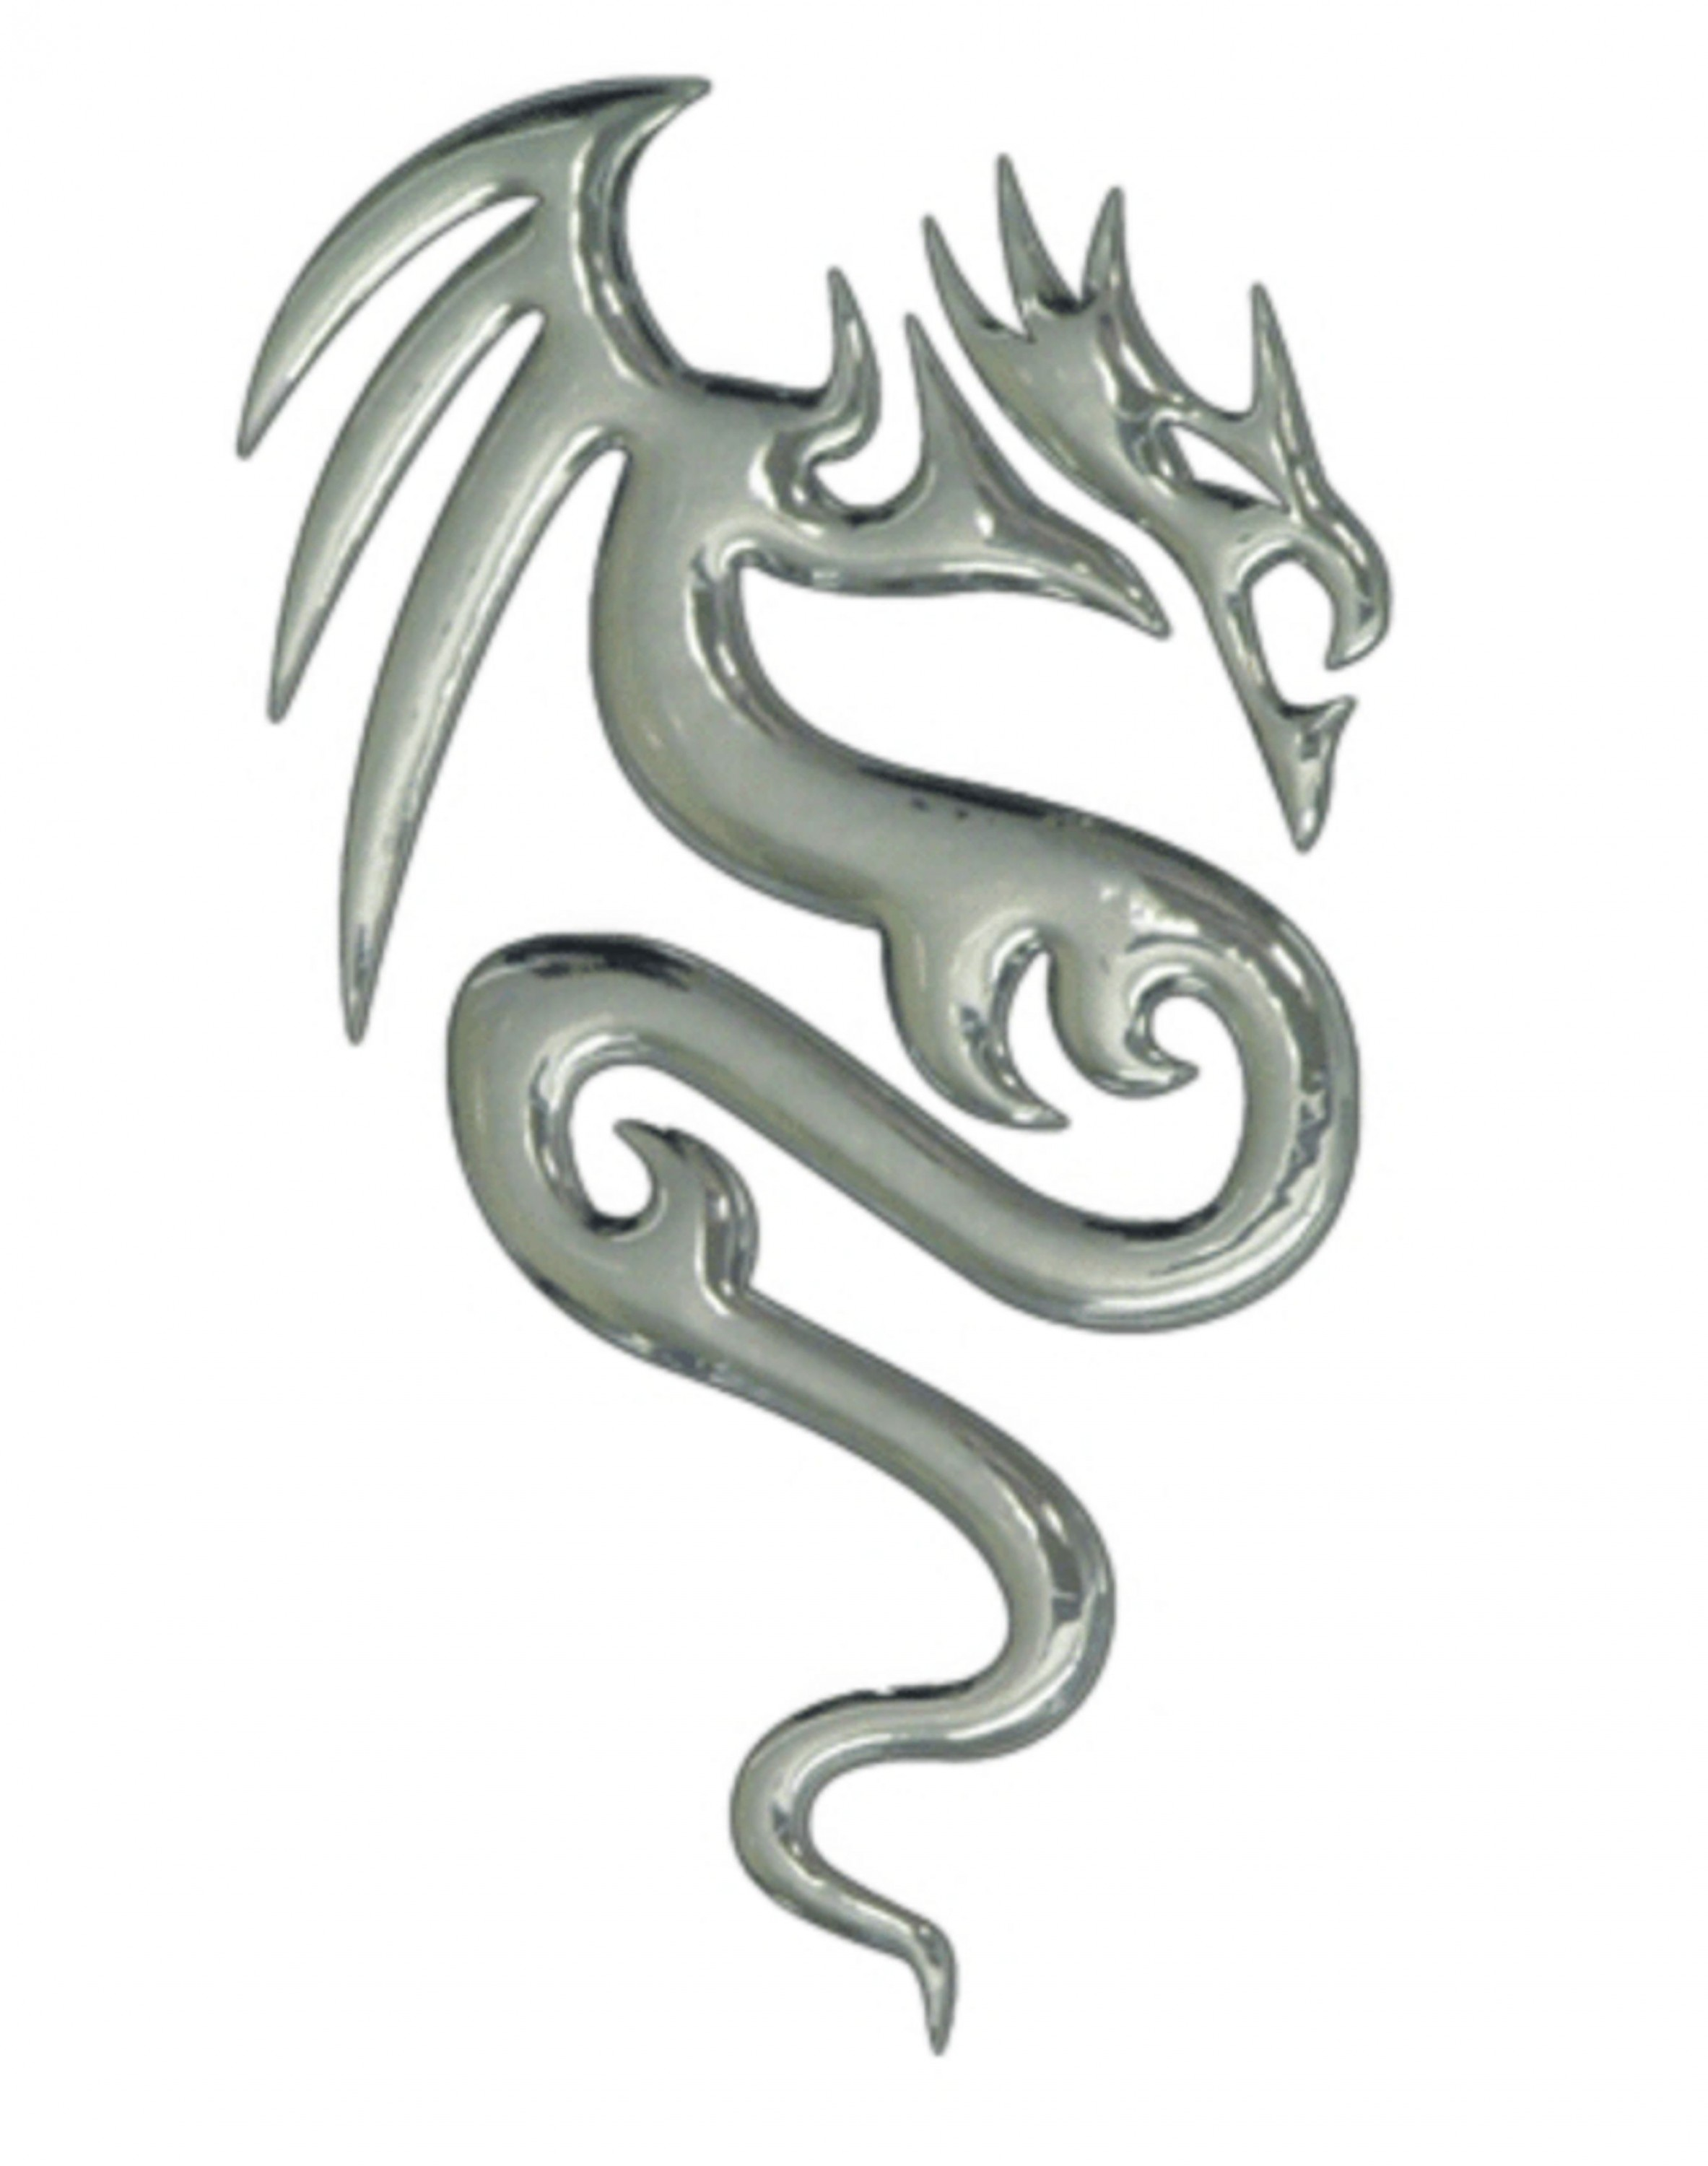 3D-Chrome-Sticker dragon 100 x 60 mm – Bild 1